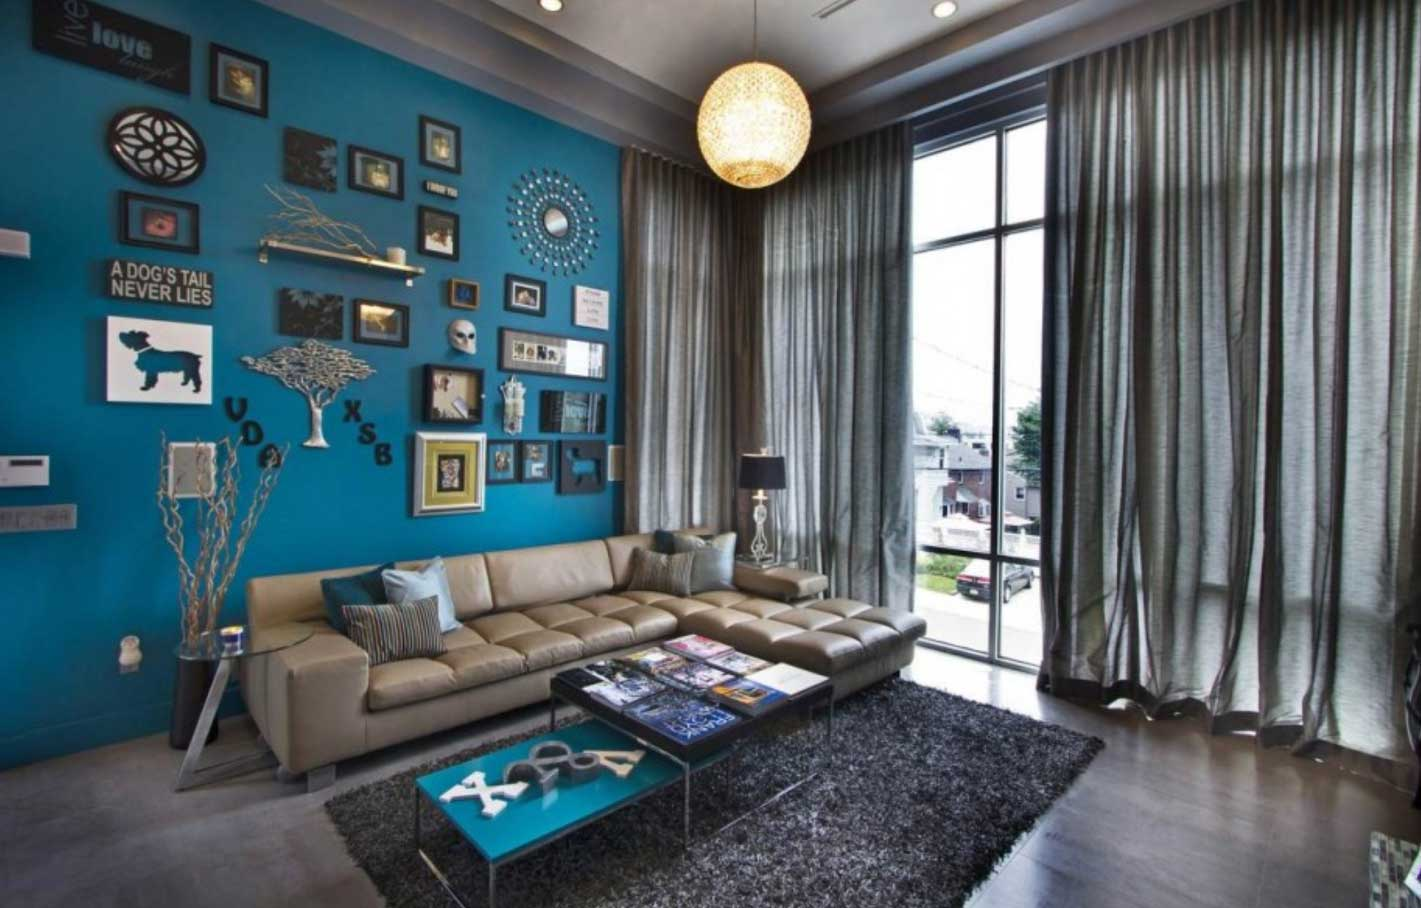 Carefree blue-green and brown living area